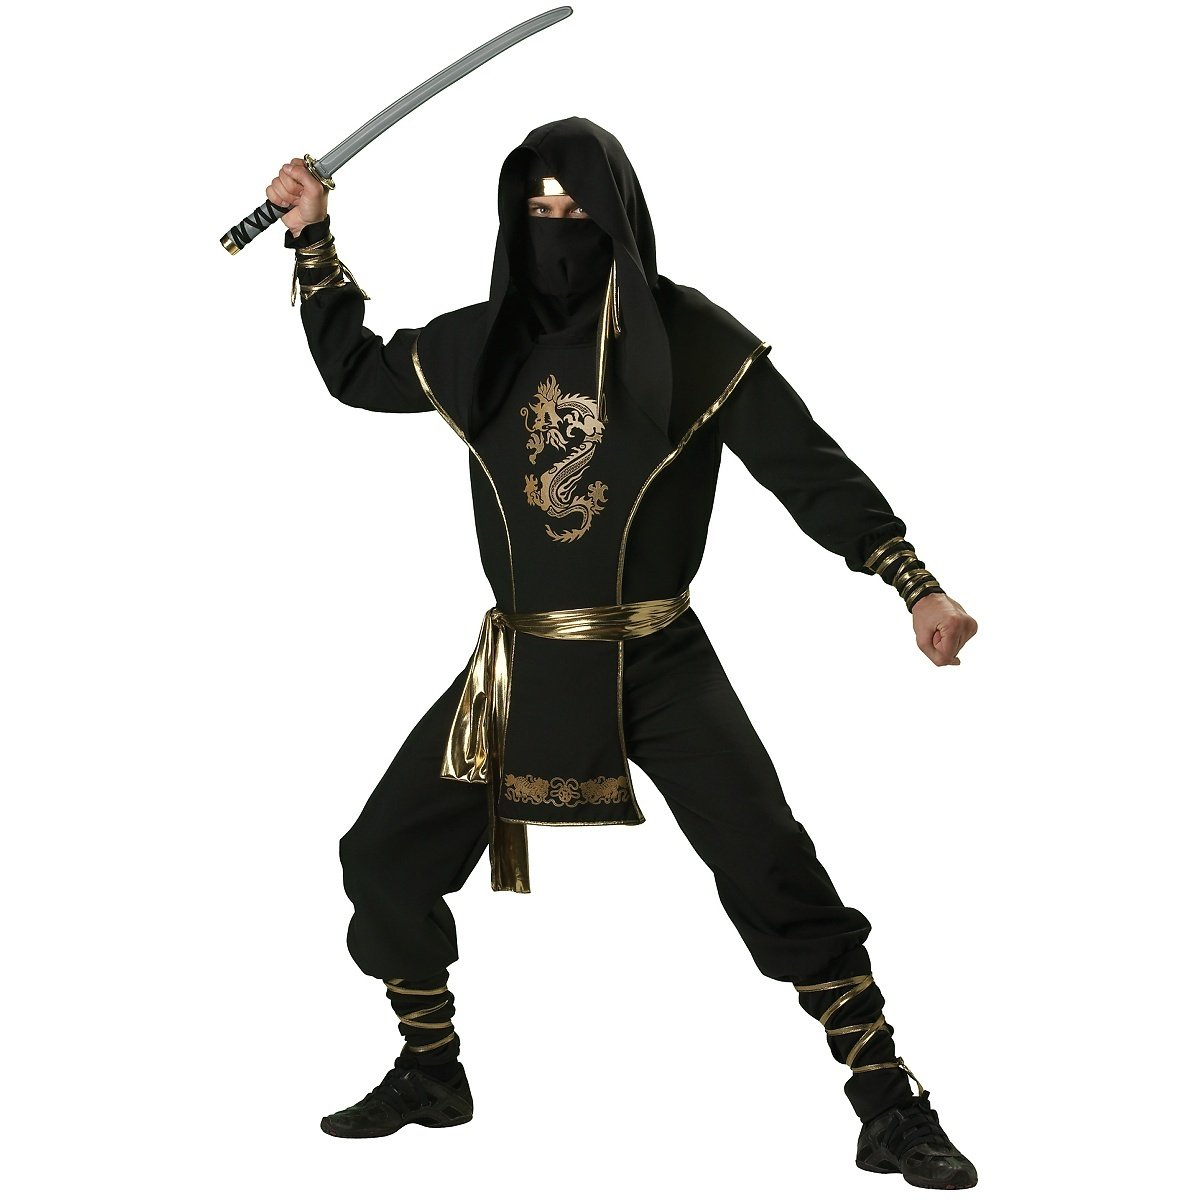 Amazon.com: Ninja Warrior Adult Costume - Medium: Clothing